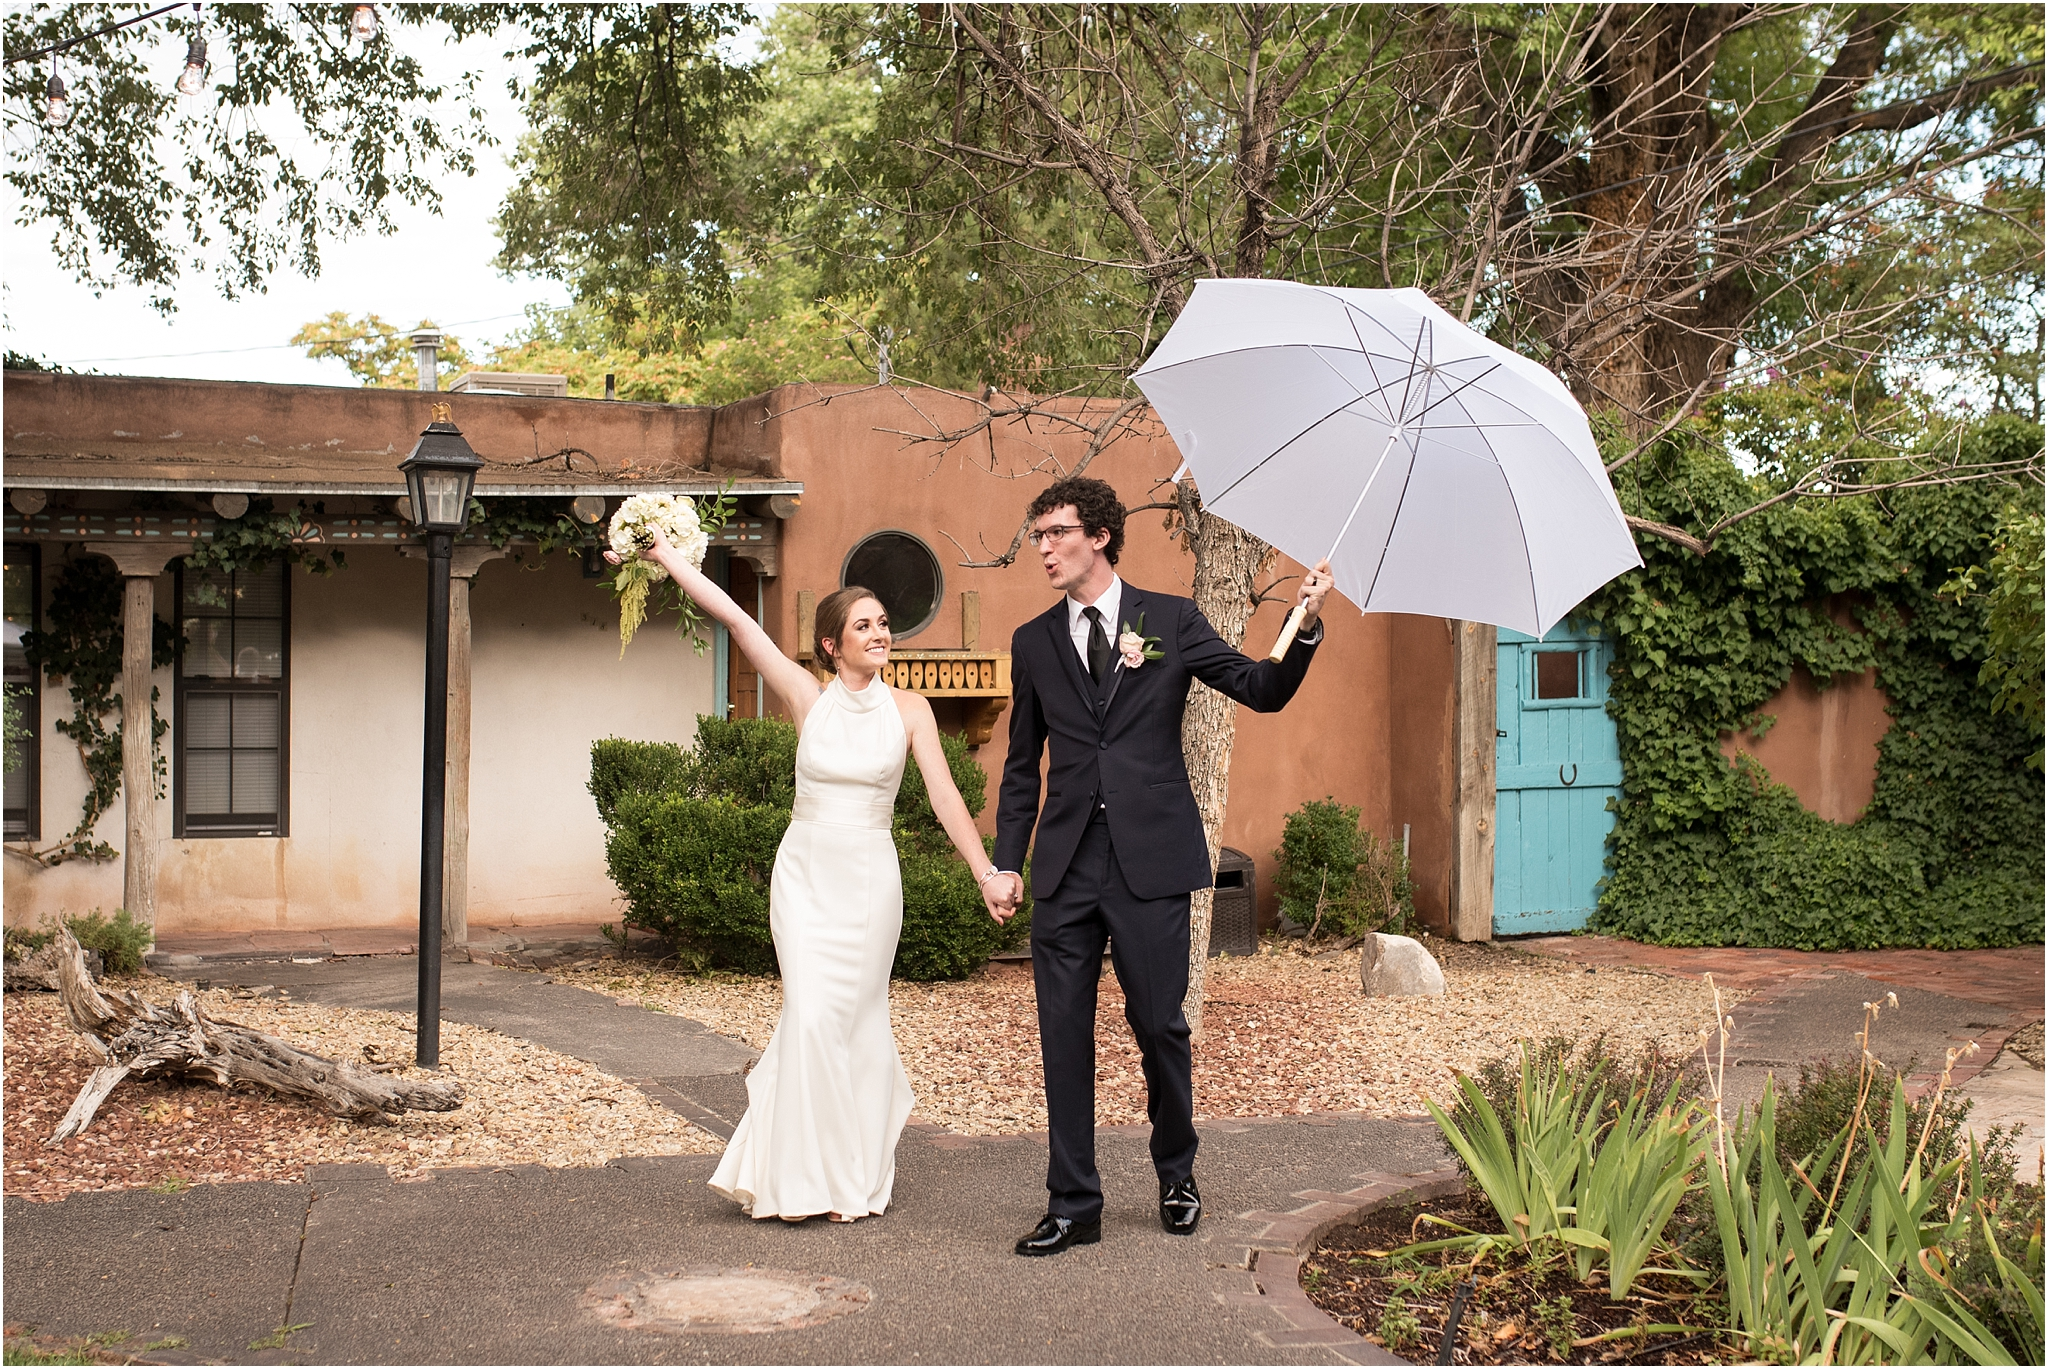 kayla kitts photography - new mexico wedding photographer - albuquerque botanic gardens - hotel albuquerque-casa de suenos_0214.jpg